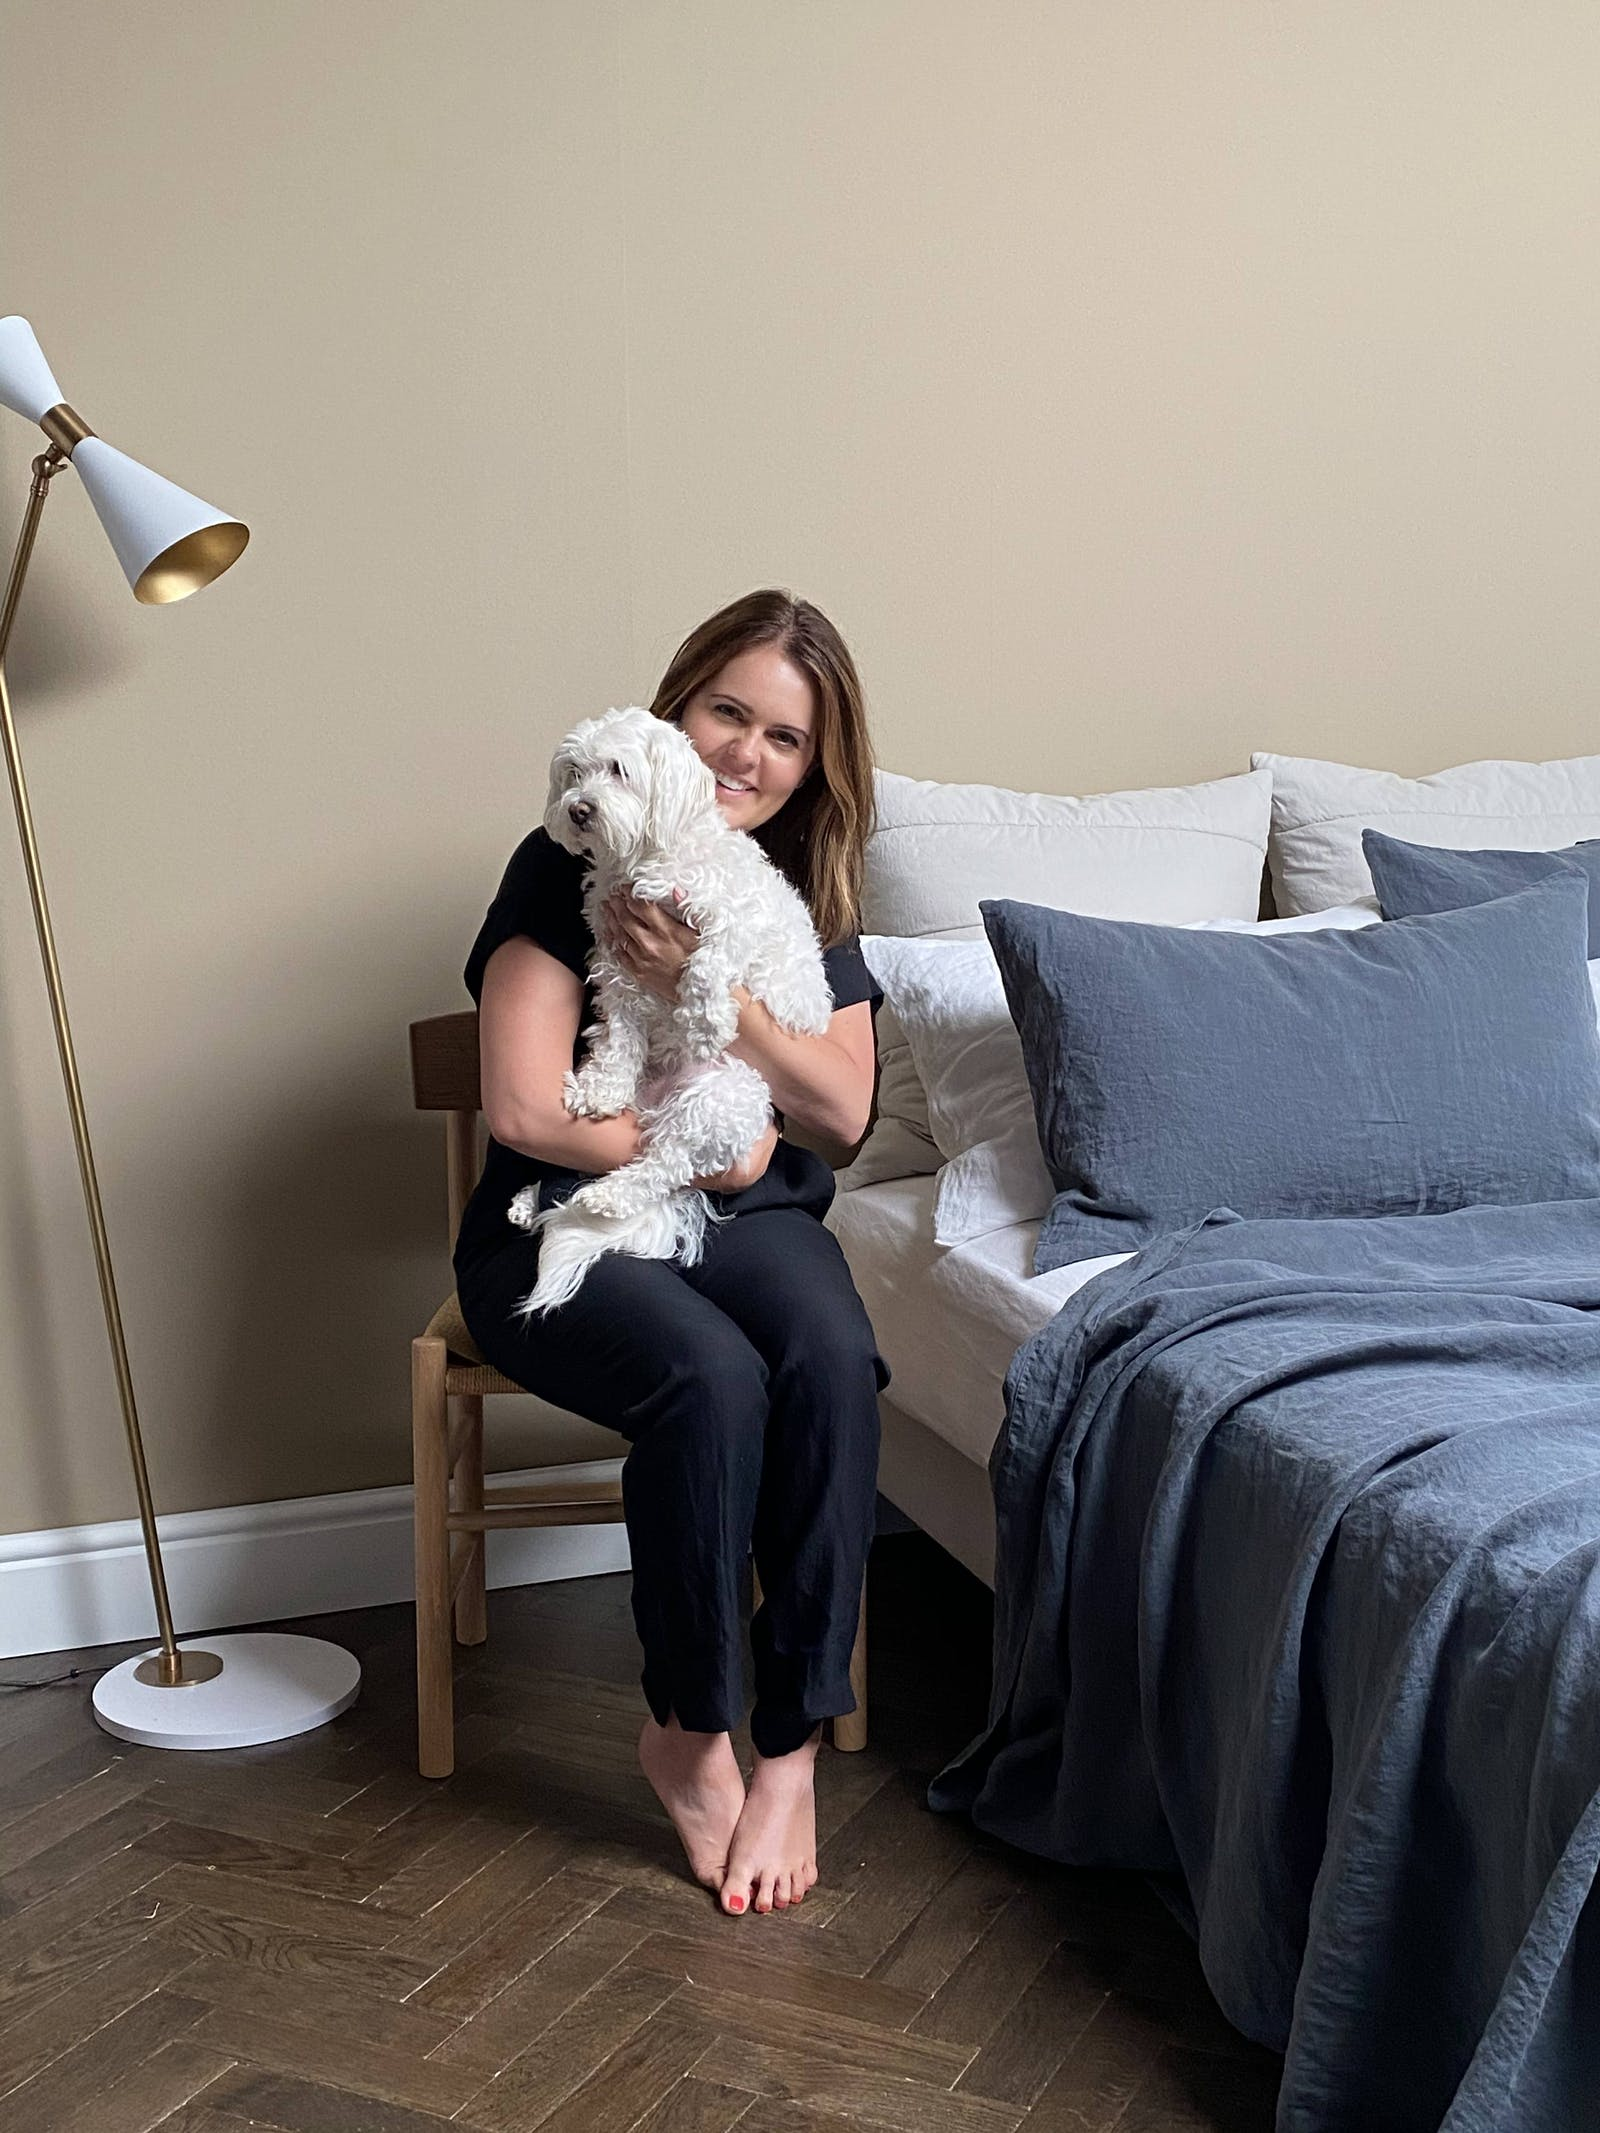 Bedfolk founder Jo James with her dog Juju